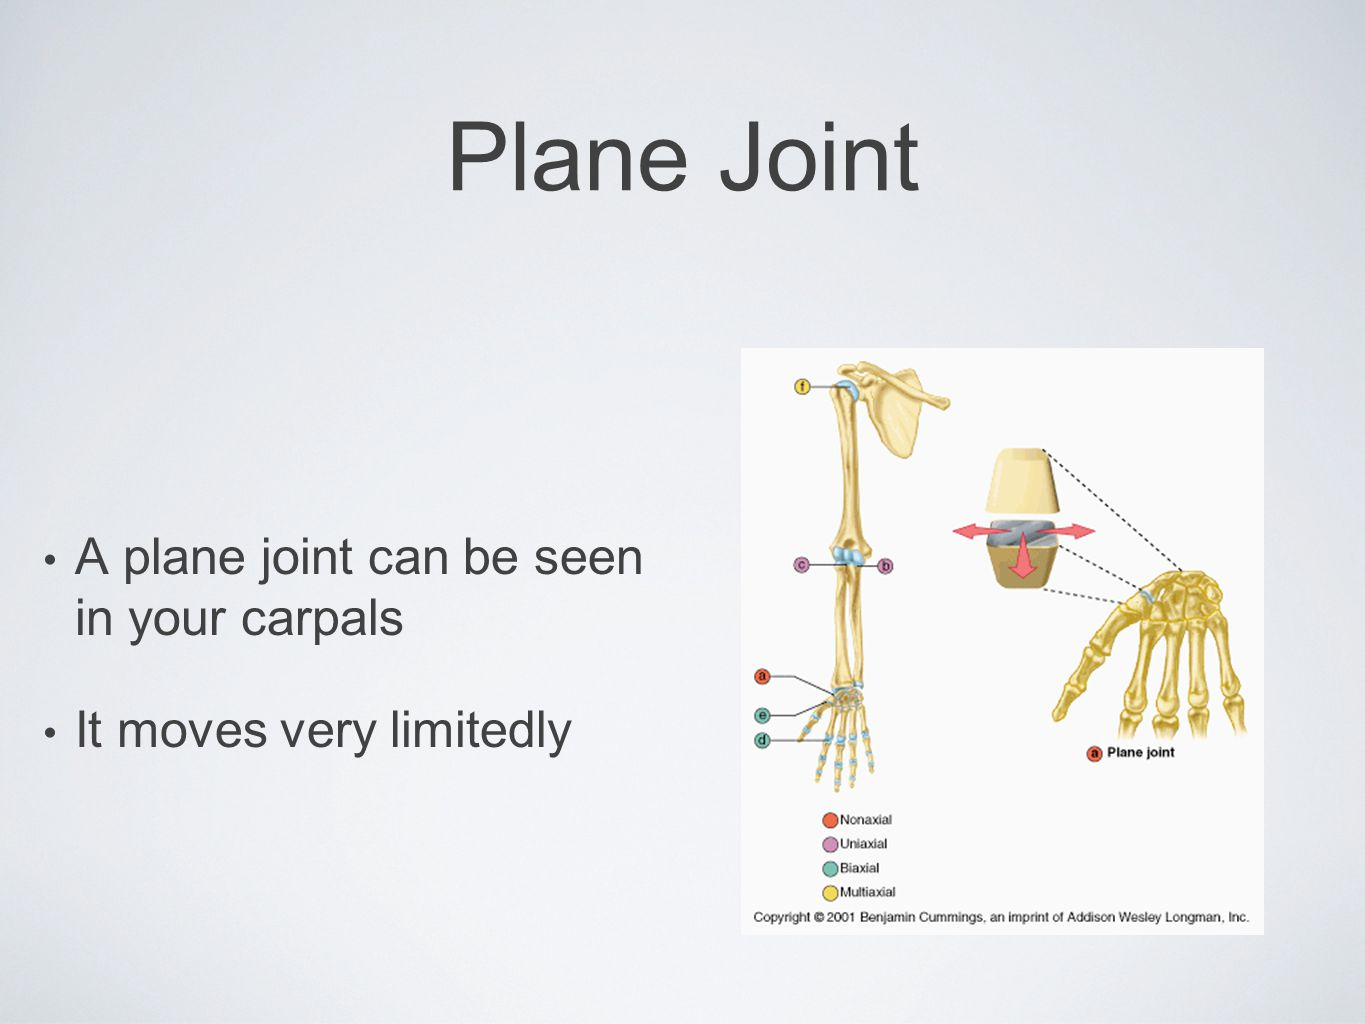 Plane Joint A plane joint can be seen in your carpals